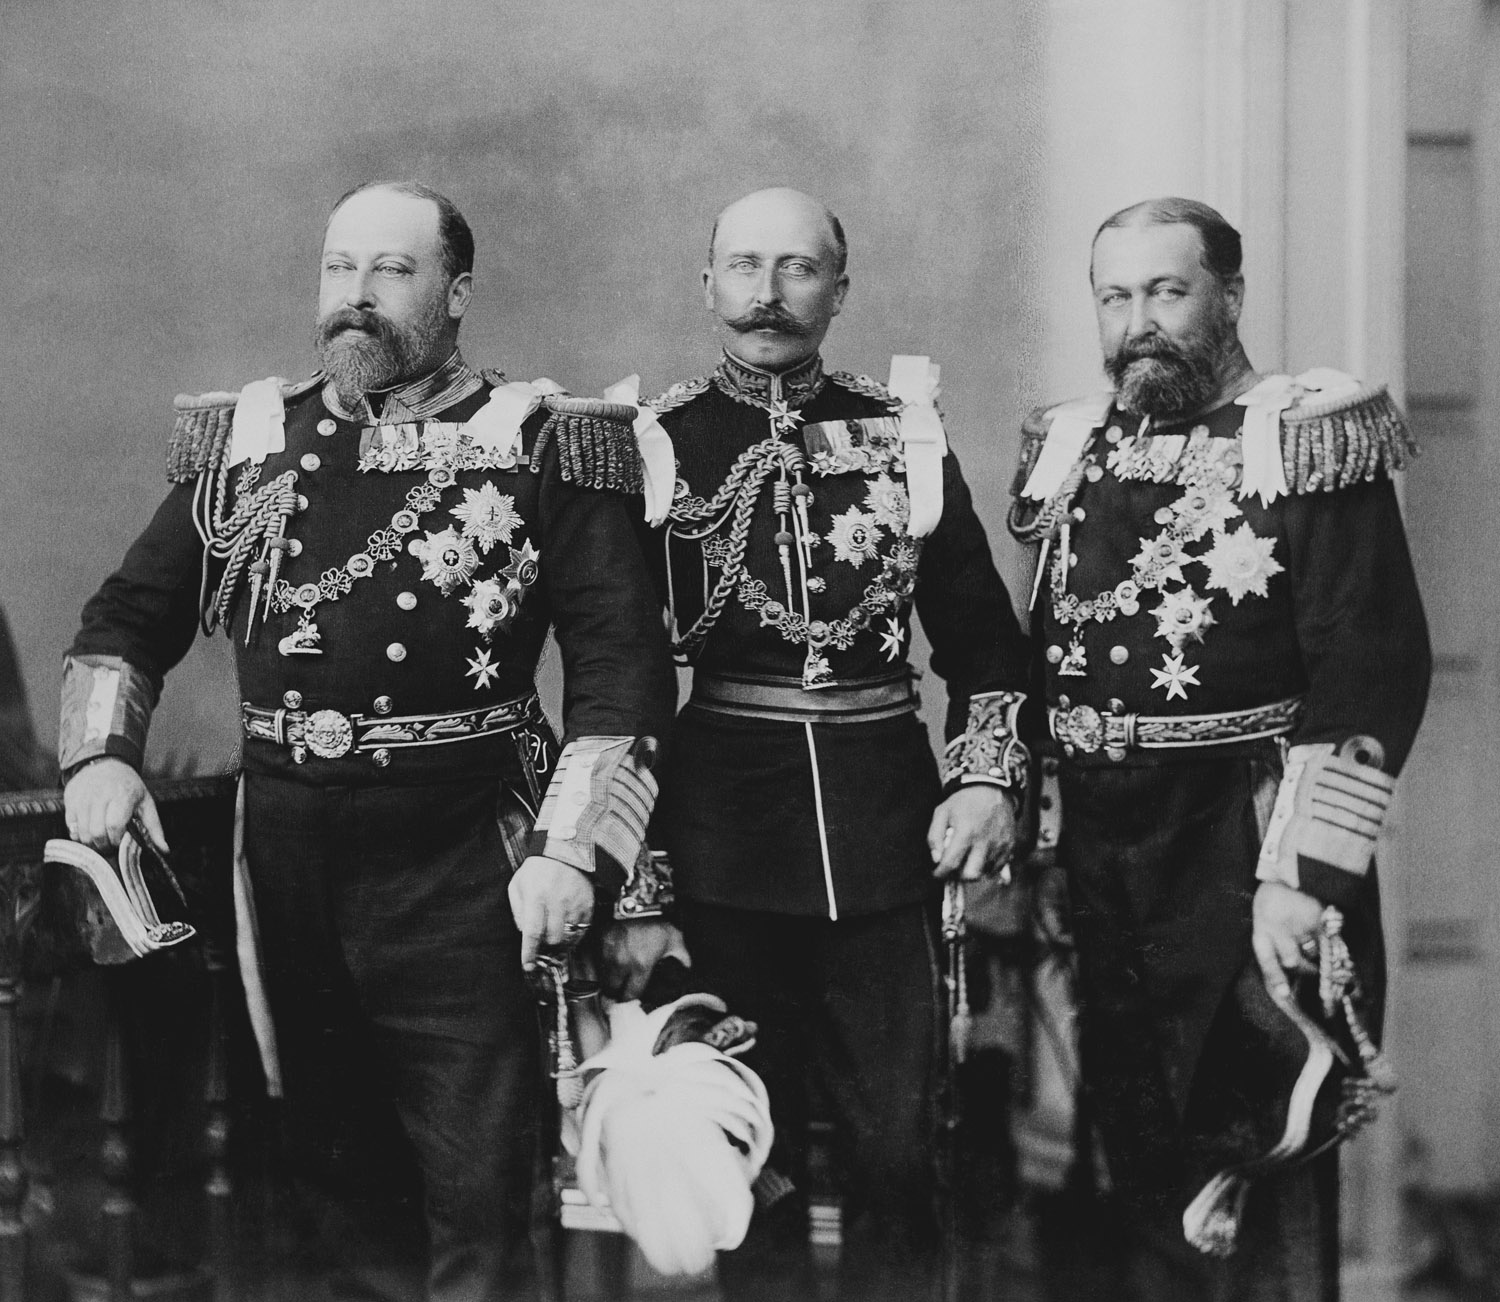 File:Albert Edward, Prince of Wales, Arthur, Duke of Connaught, and